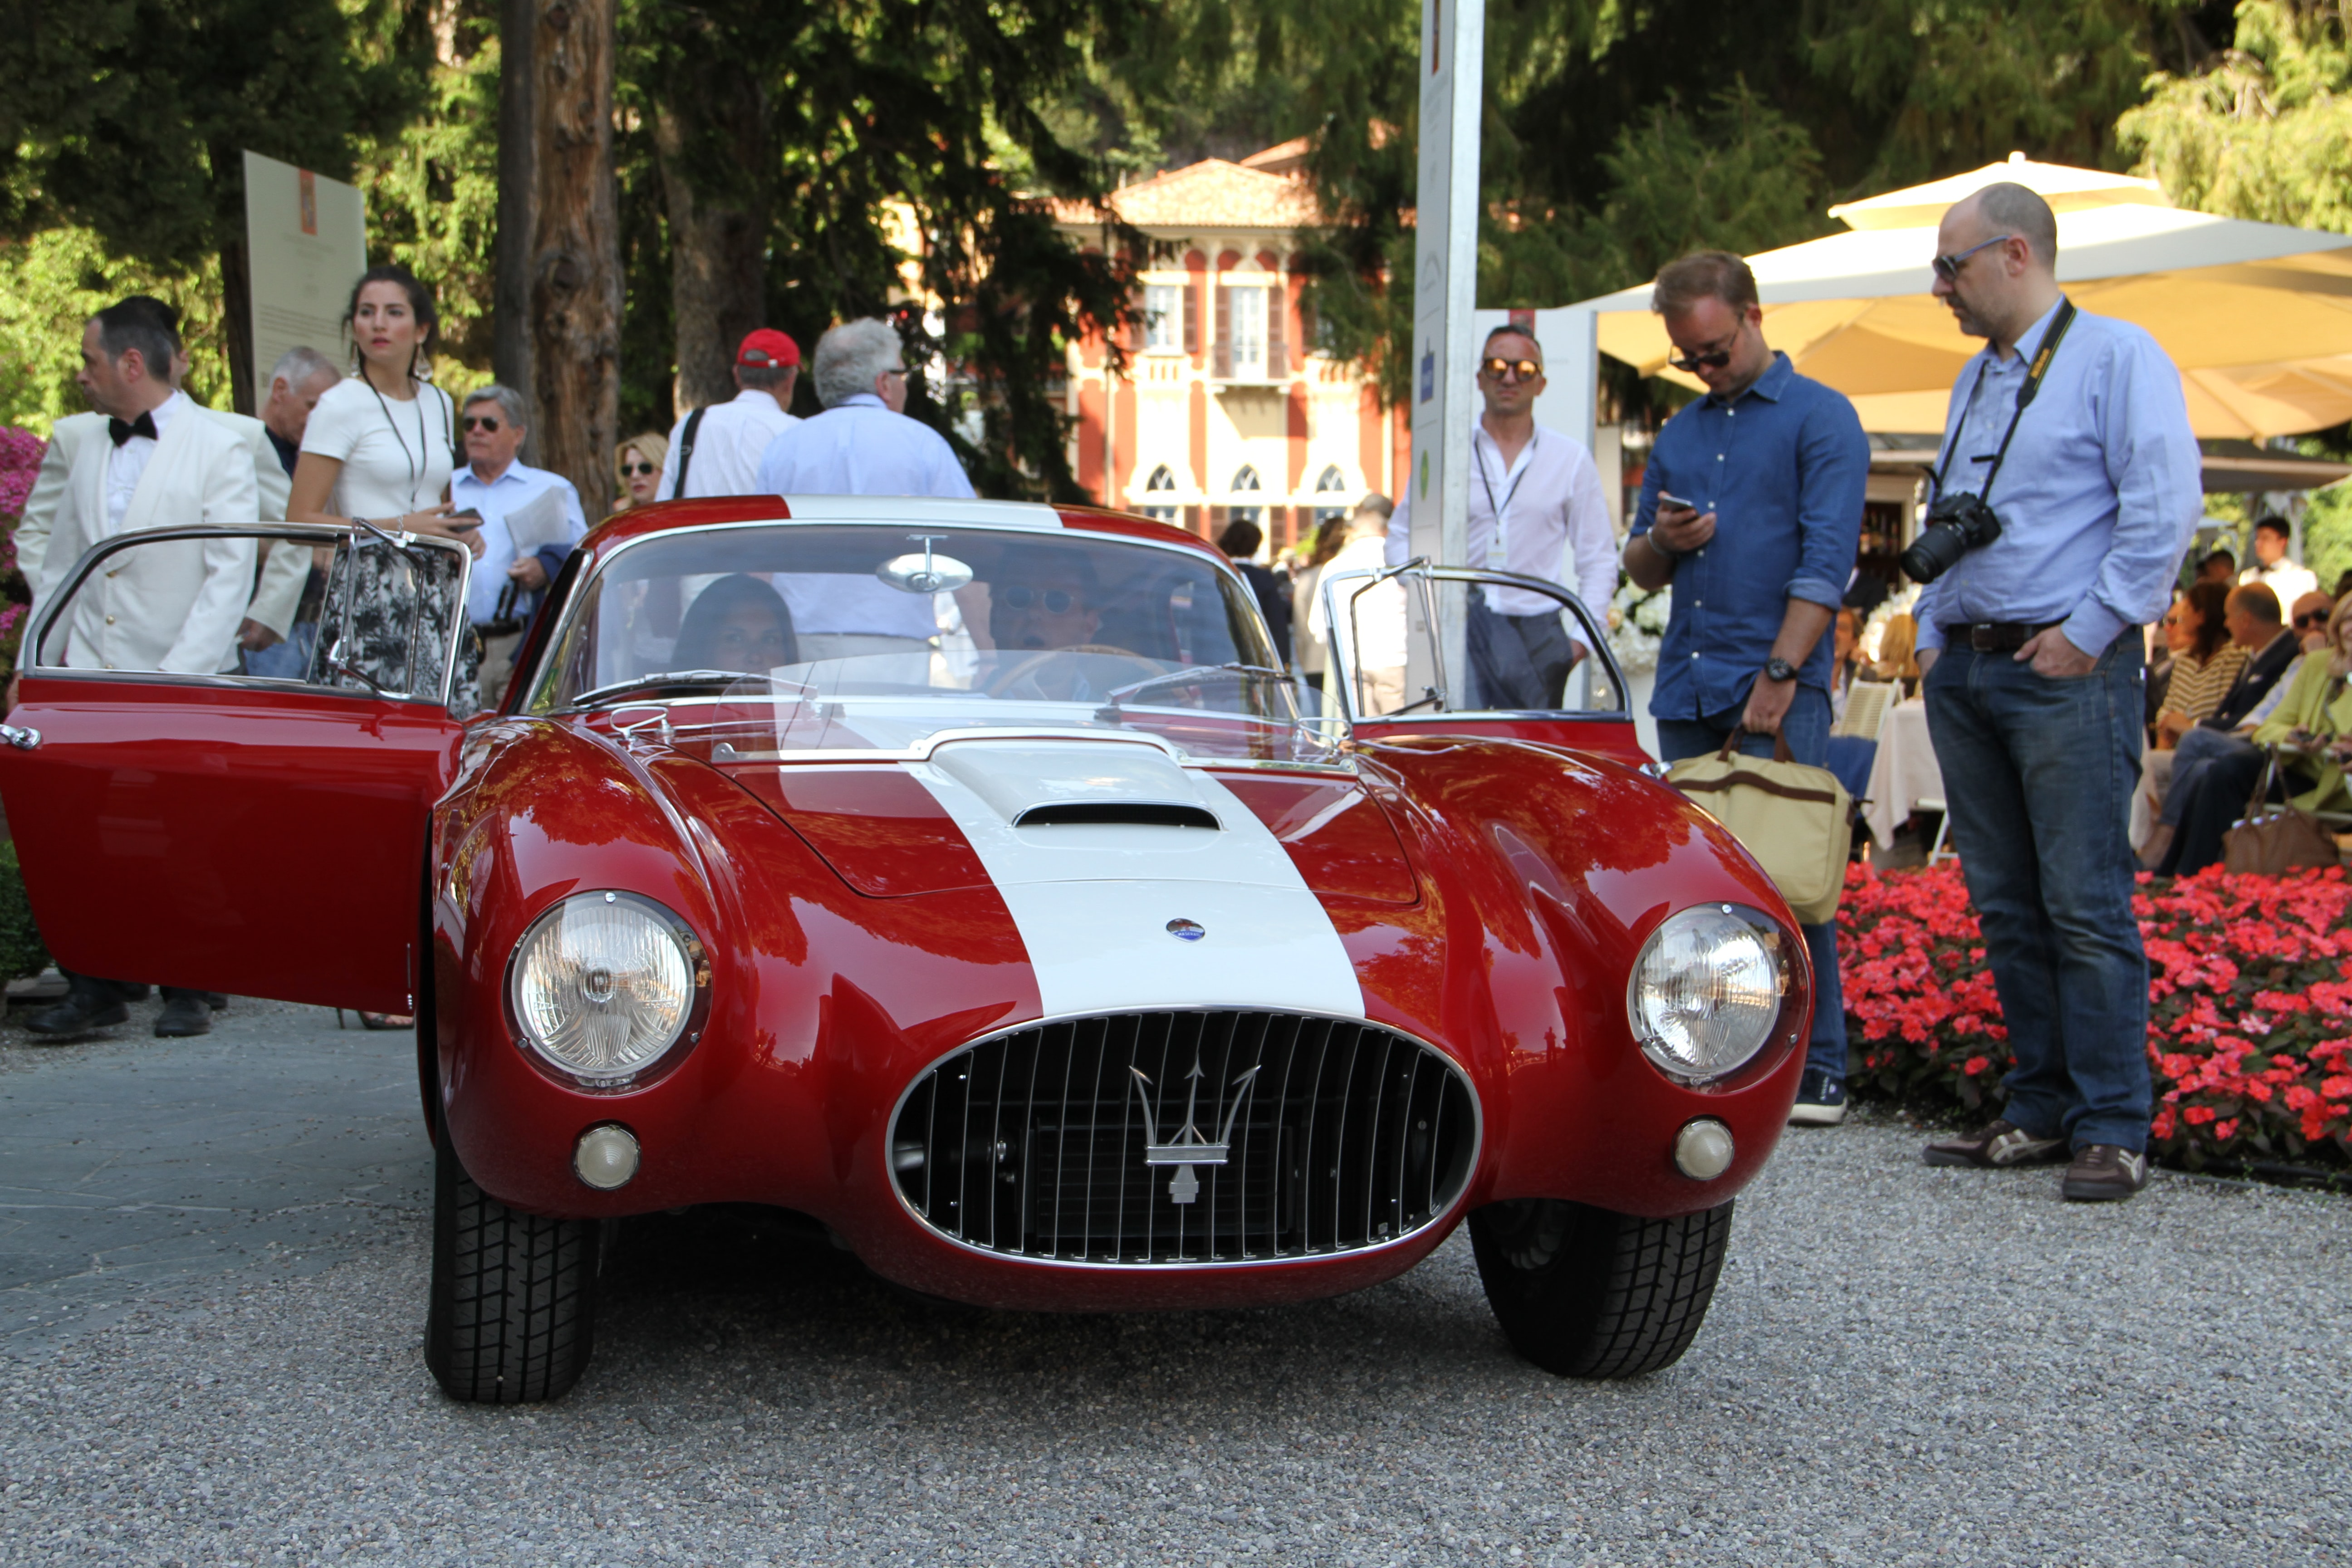 The winning Maserati A6 GCS.  Photo Report: Watch And Car Spotting At The 2016 Concorso d'Eleganza Villa d'Este With A. Lange & Söhne Photo Report: Watch And Car Spotting At The 2016 Concorso d'Eleganza Villa d'Este With A. Lange & Söhne Winner